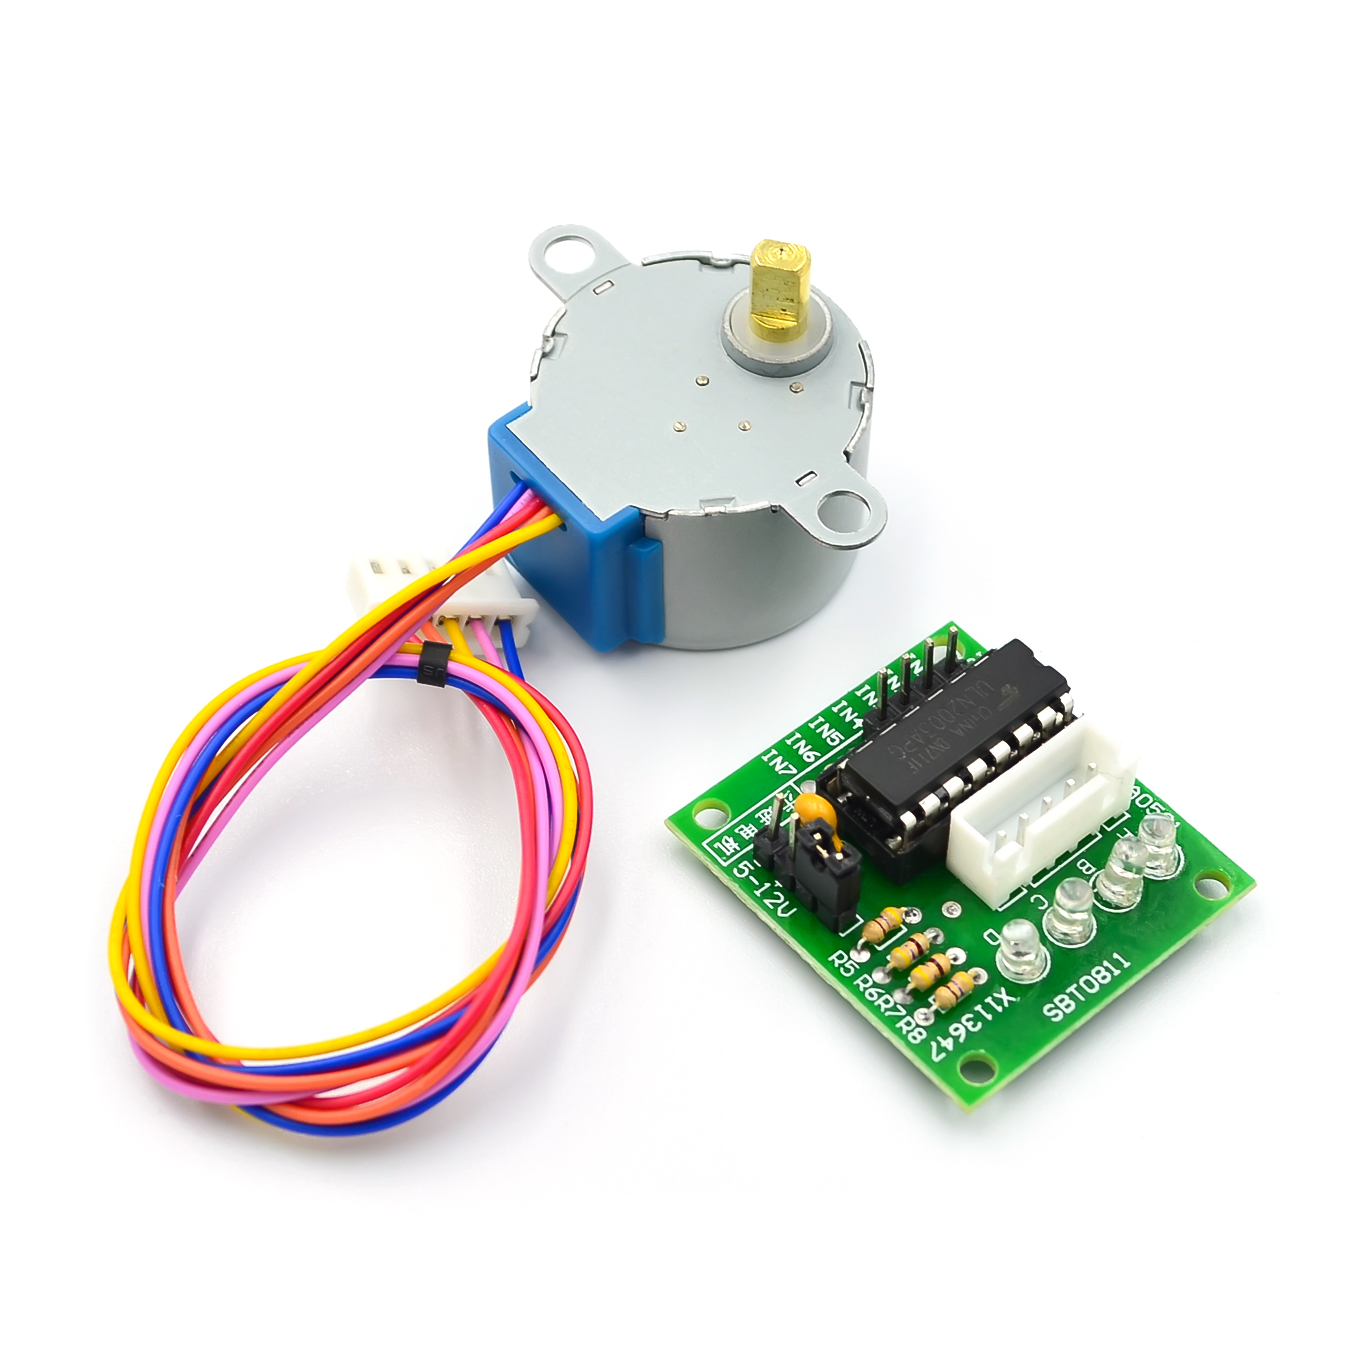 5V Stepper Motor 28BYJ-48 With Drive Test Module Board ULN2003 for Arduino